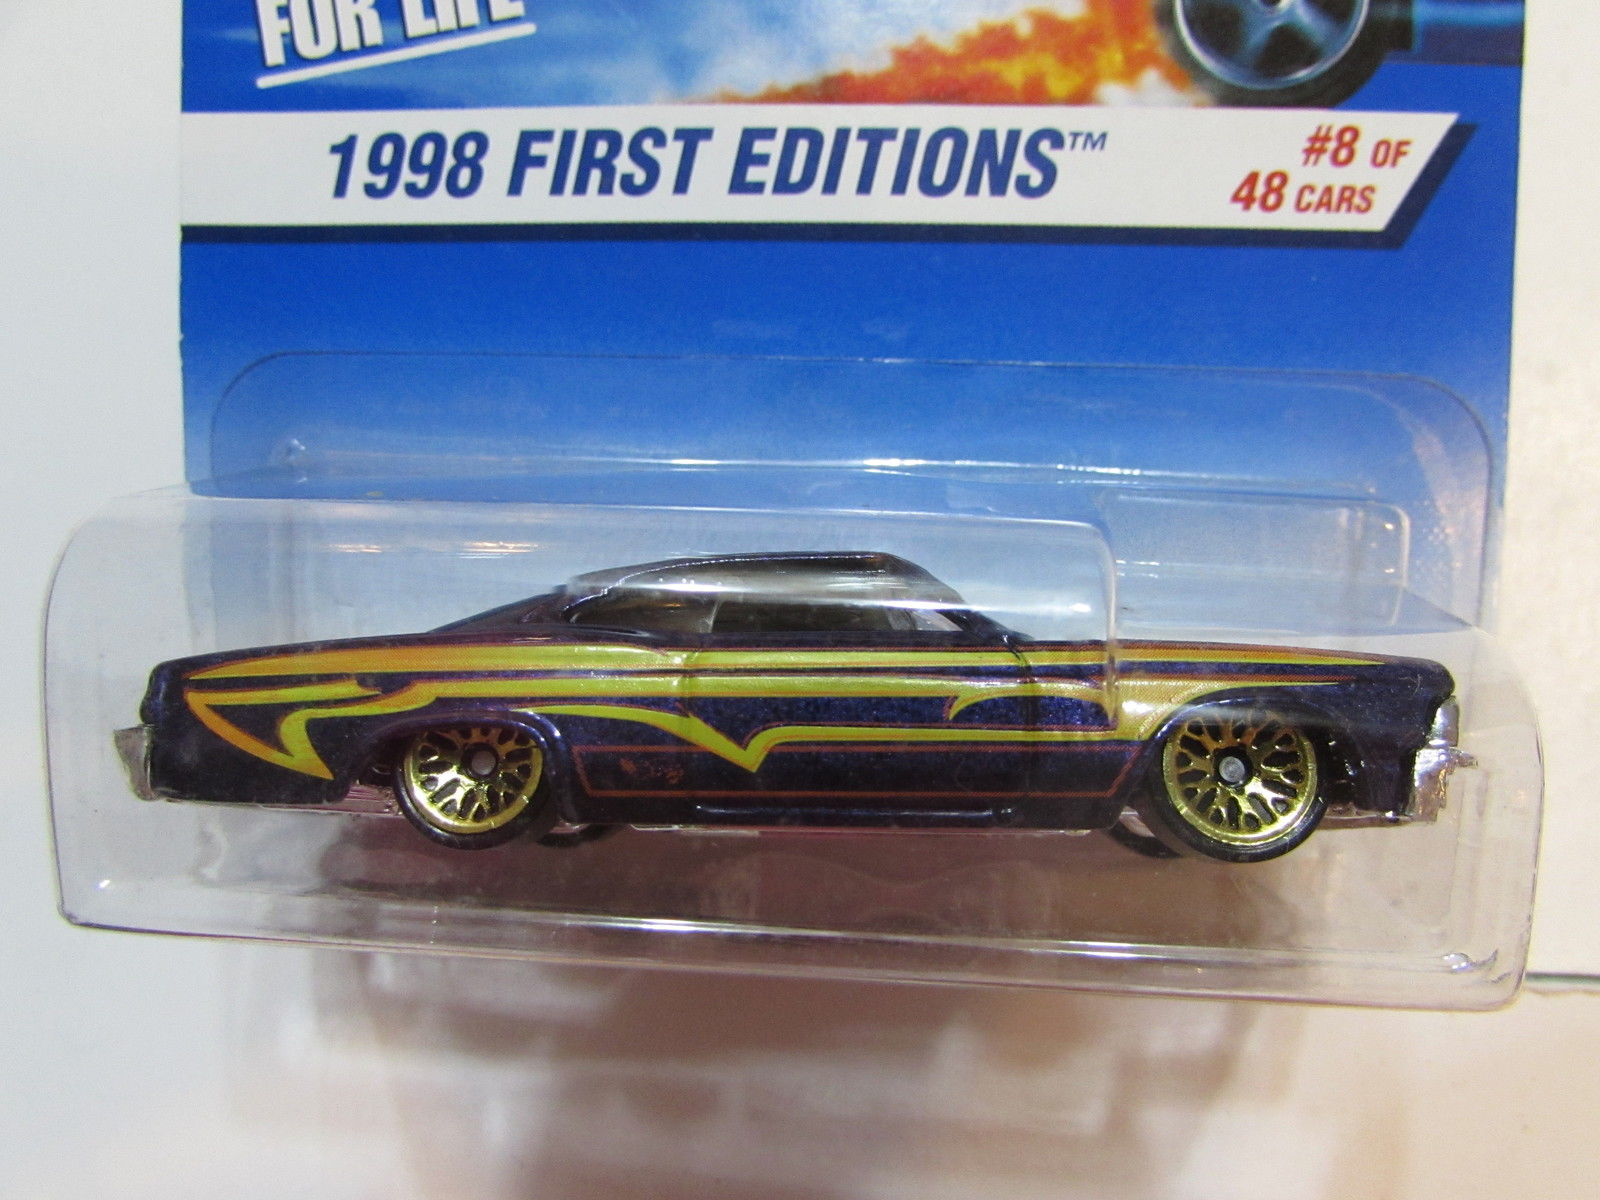 HOT WHEELS 1998 FIRST EDITIONS '65 IMPALA LOWRIDER #635